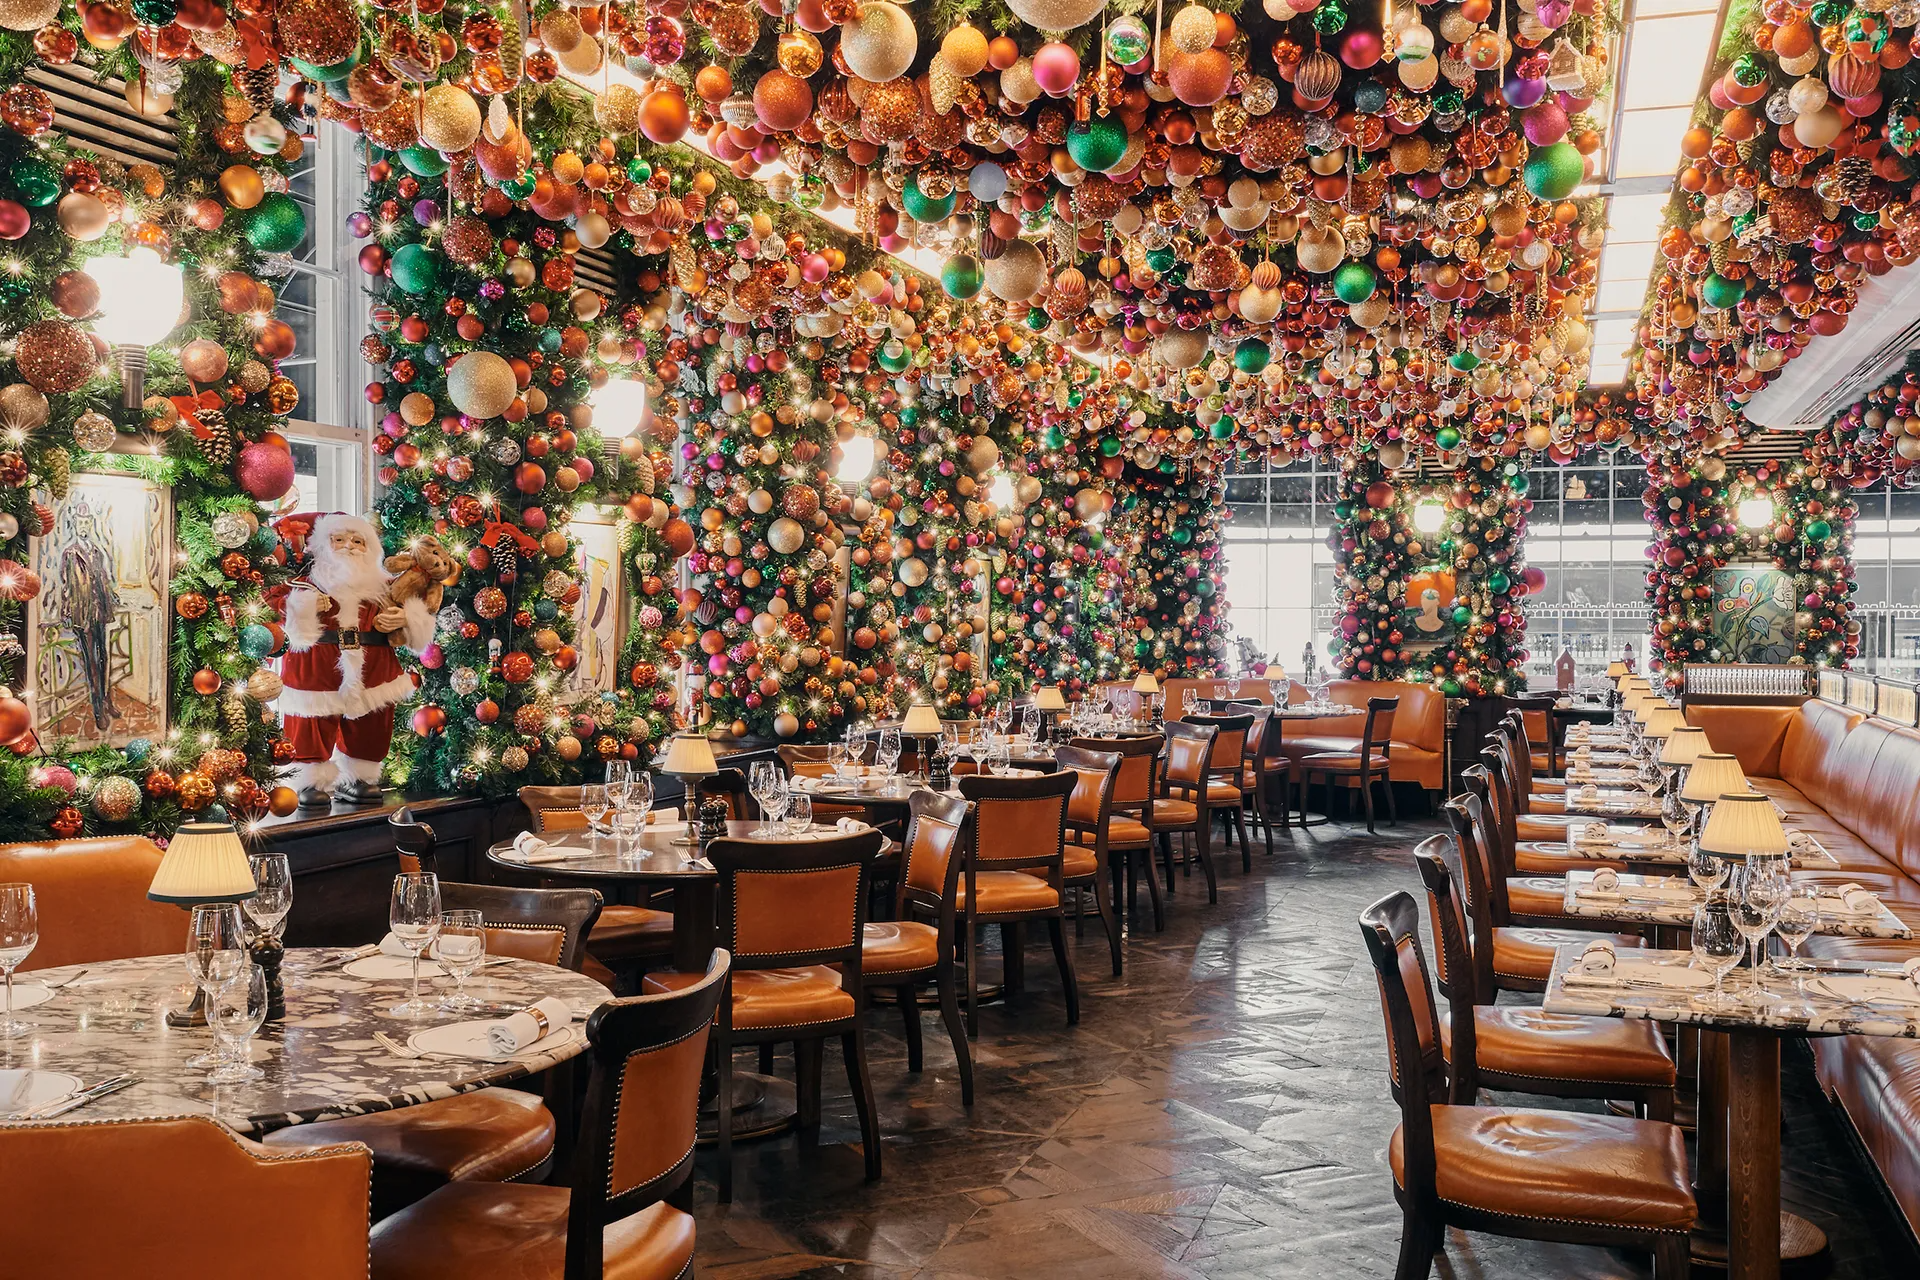 3 ways restaurants should plan for Christmas right now